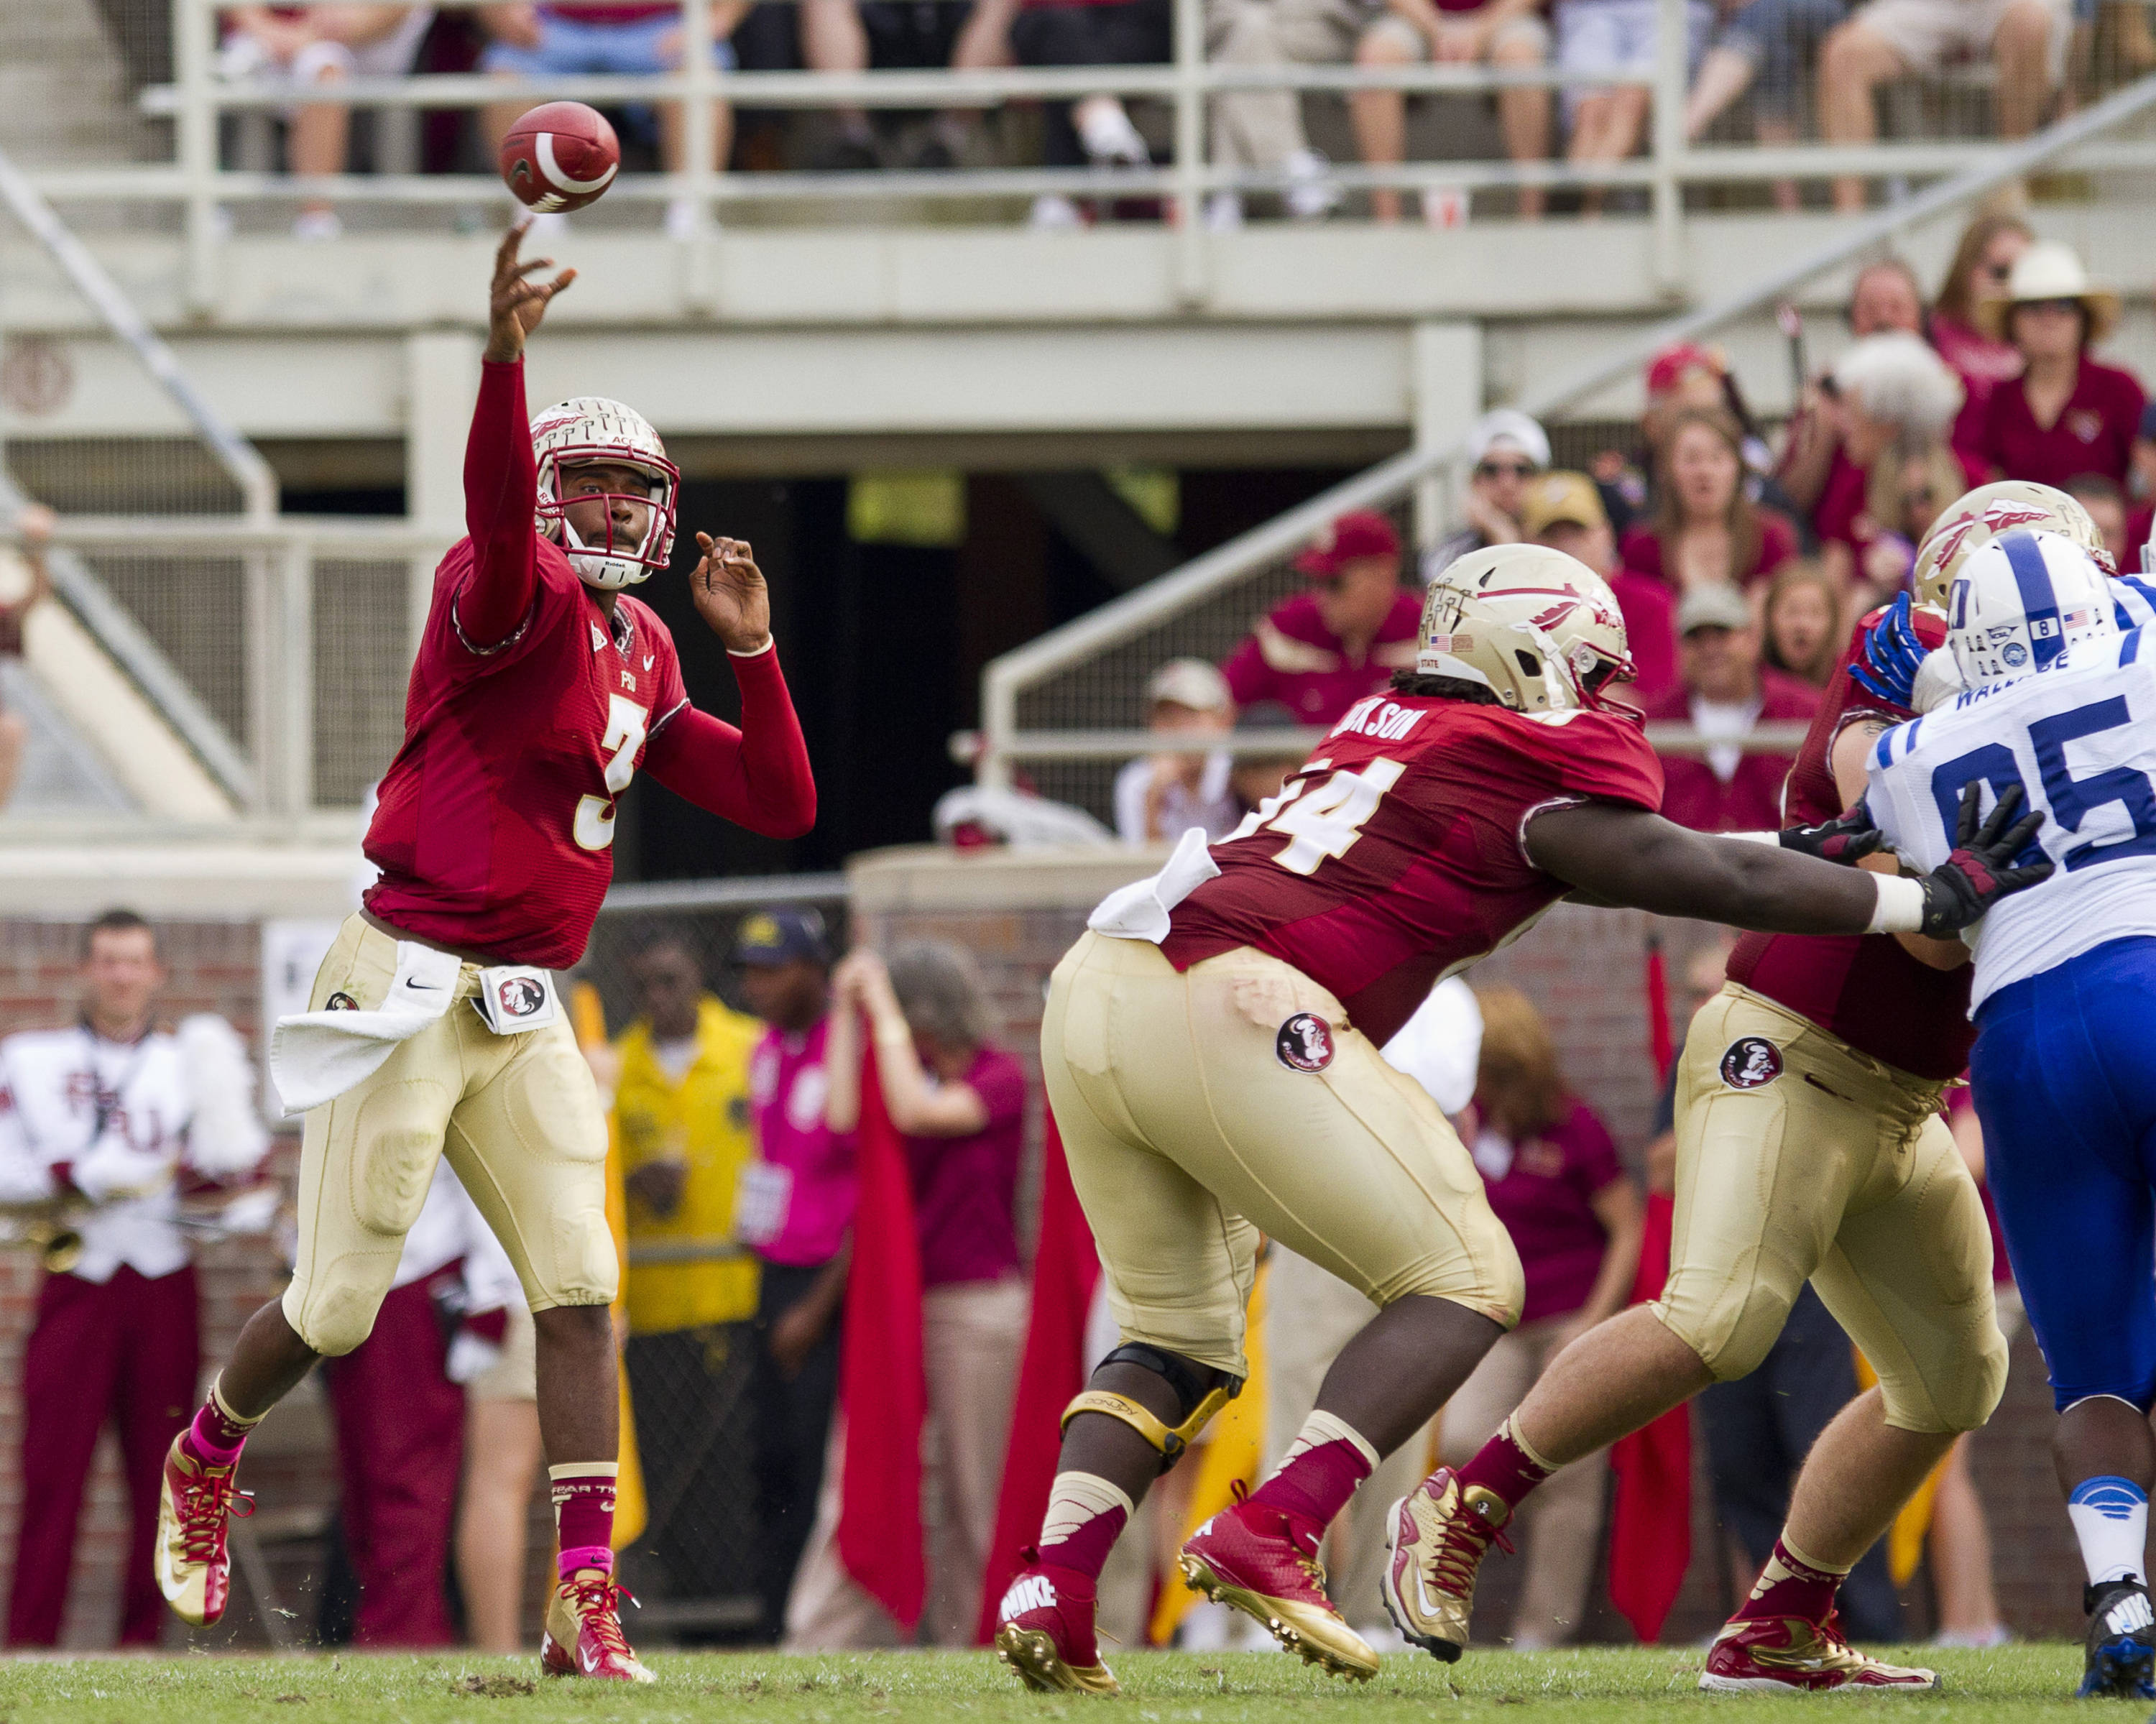 EJ Manuel (3) makes a pass during FSU's 48-7 victory over Duke on October 27, 2012 in Tallahassee, Fla.